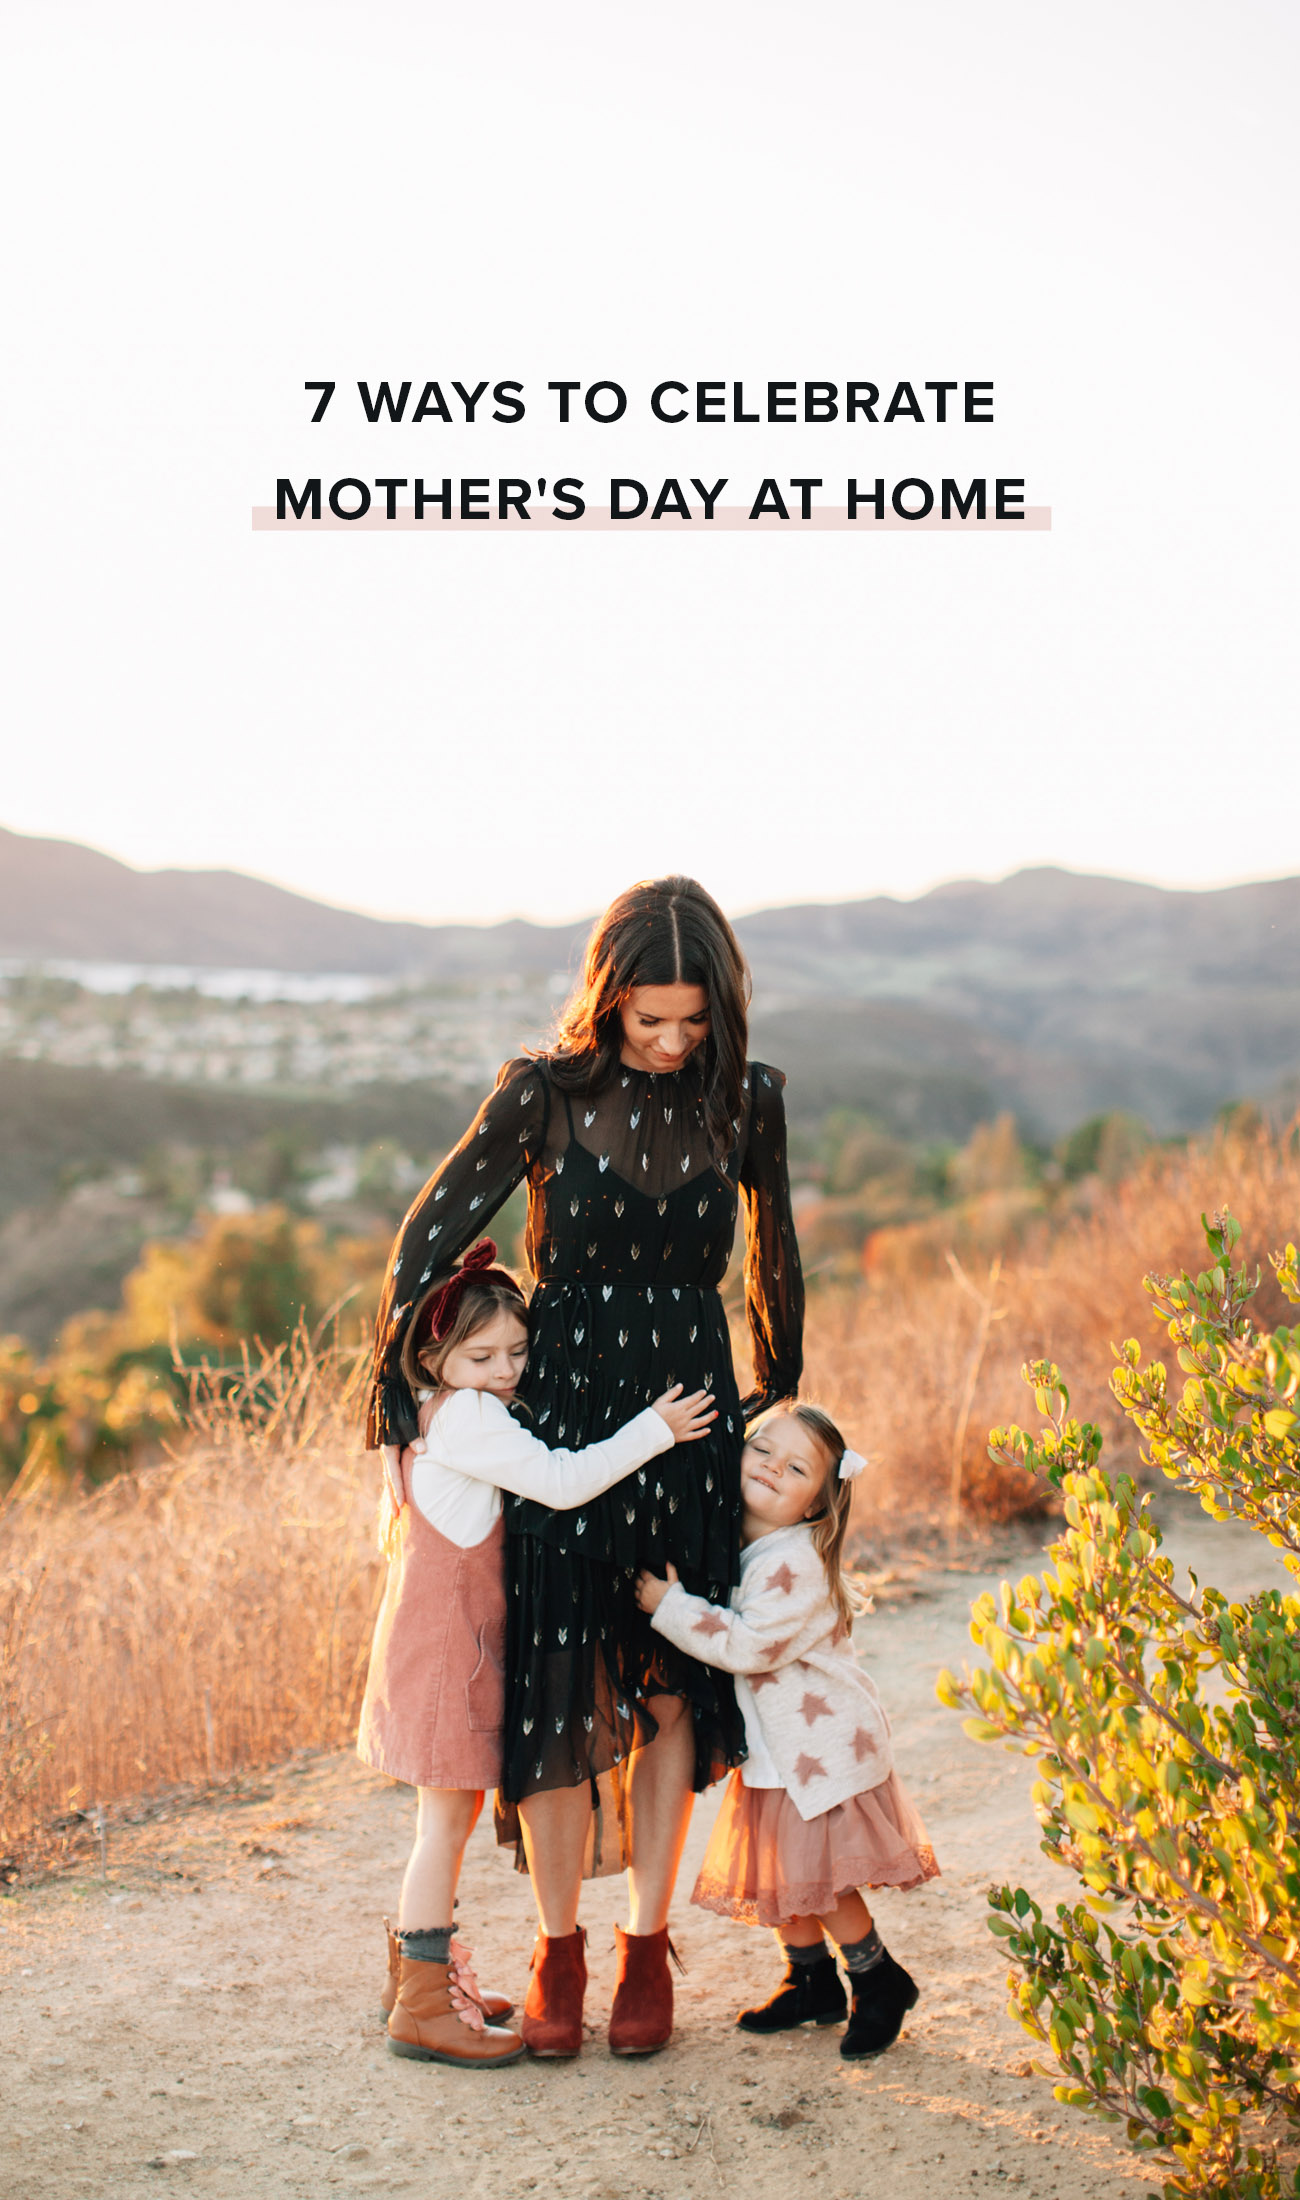 7 Ways to Celebrate Mother's Day at Home